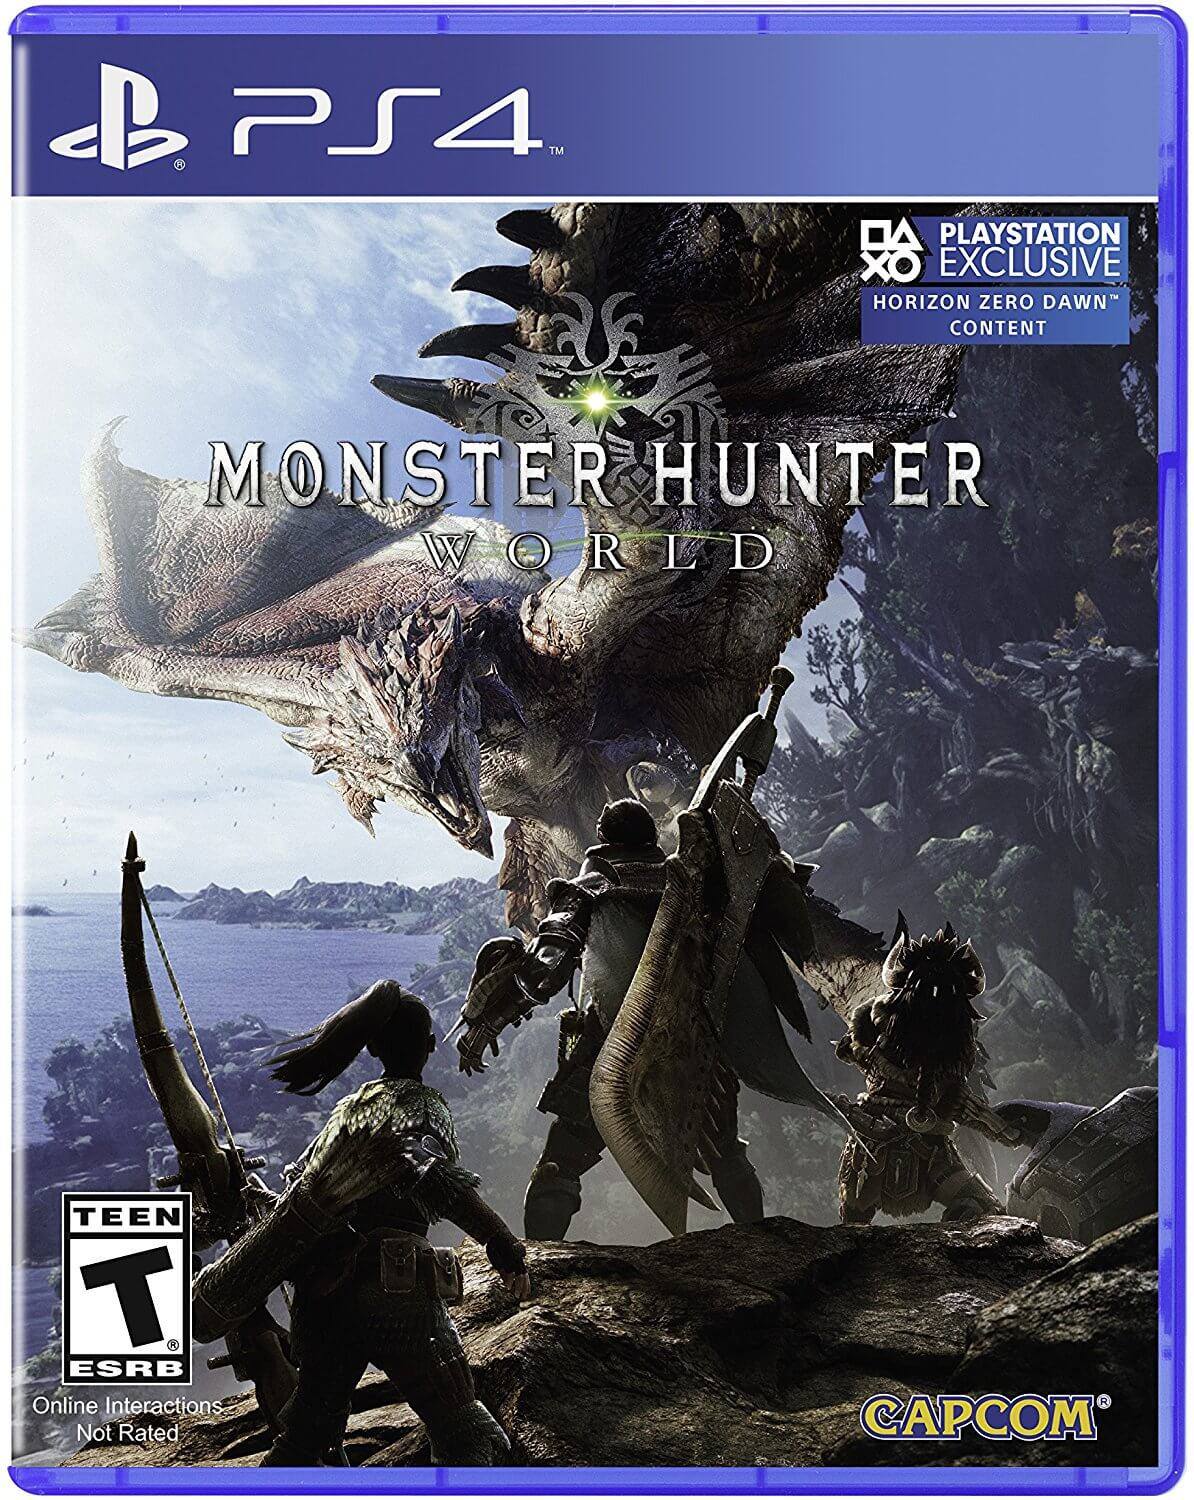 Monster Hunter World Stays in First Place on UK Sales Chart